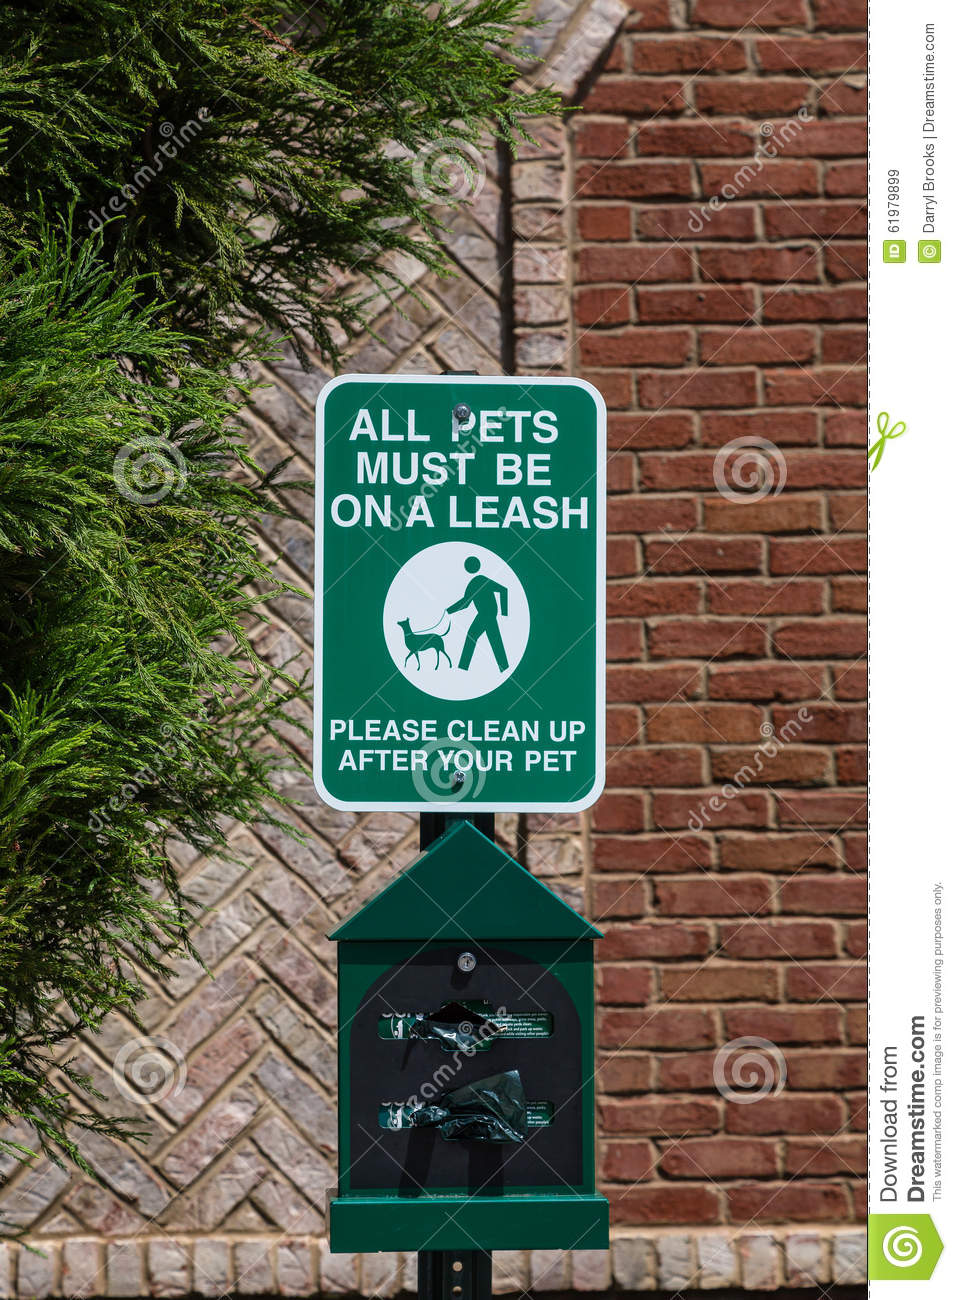 Weekly pet waste removal - pooper scooper cleaning